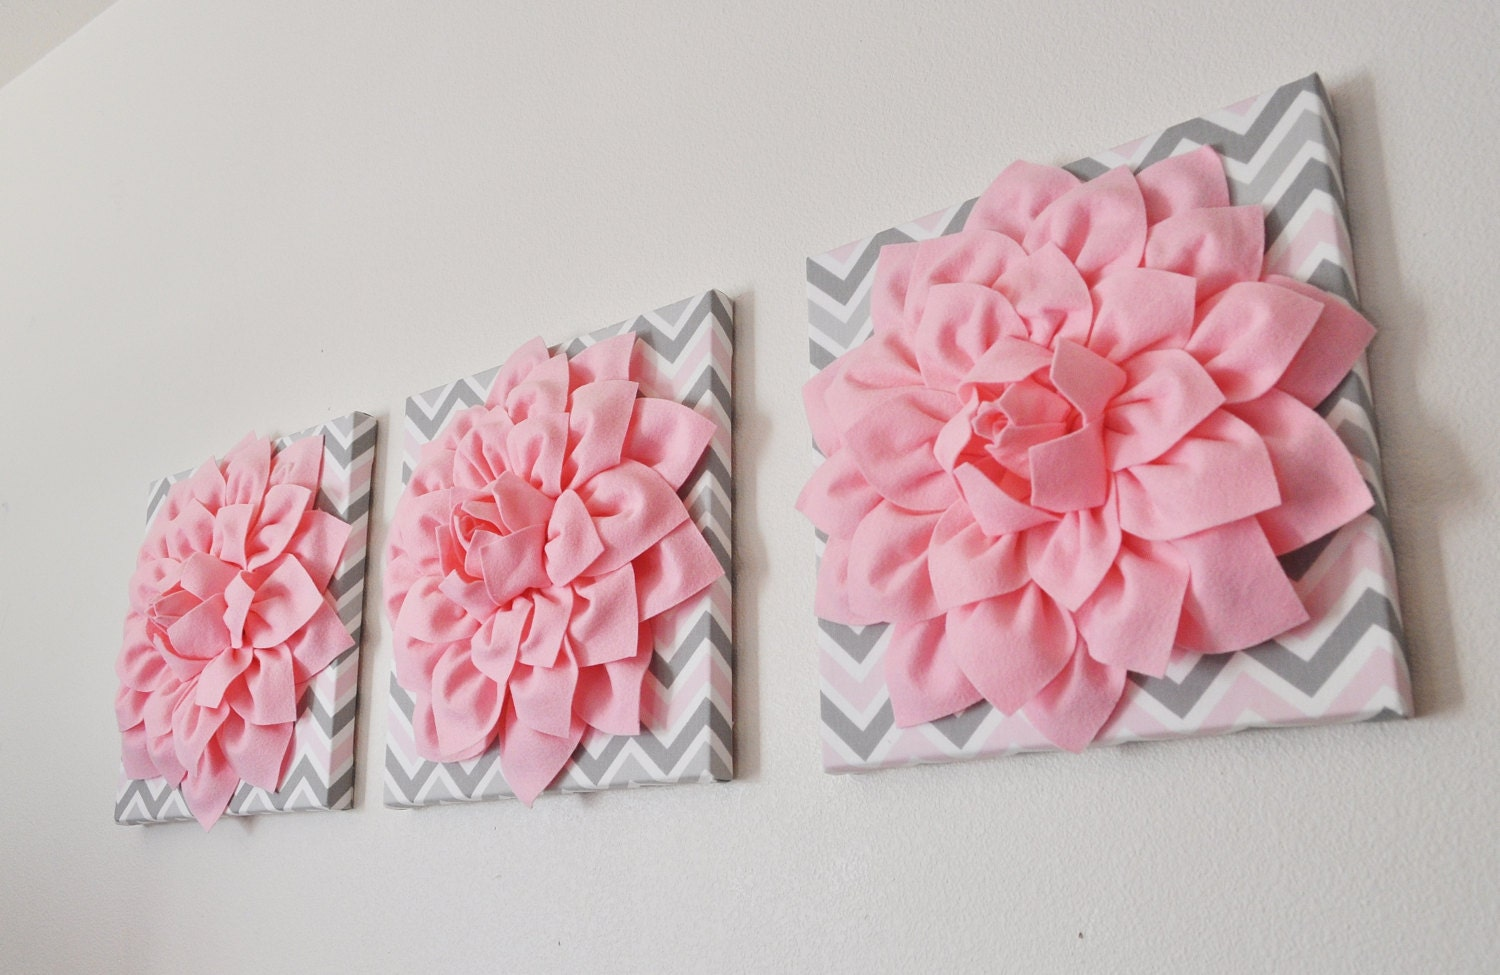 Wall Flowers Decor three wall flower decor light pink dahlia on pink and gray